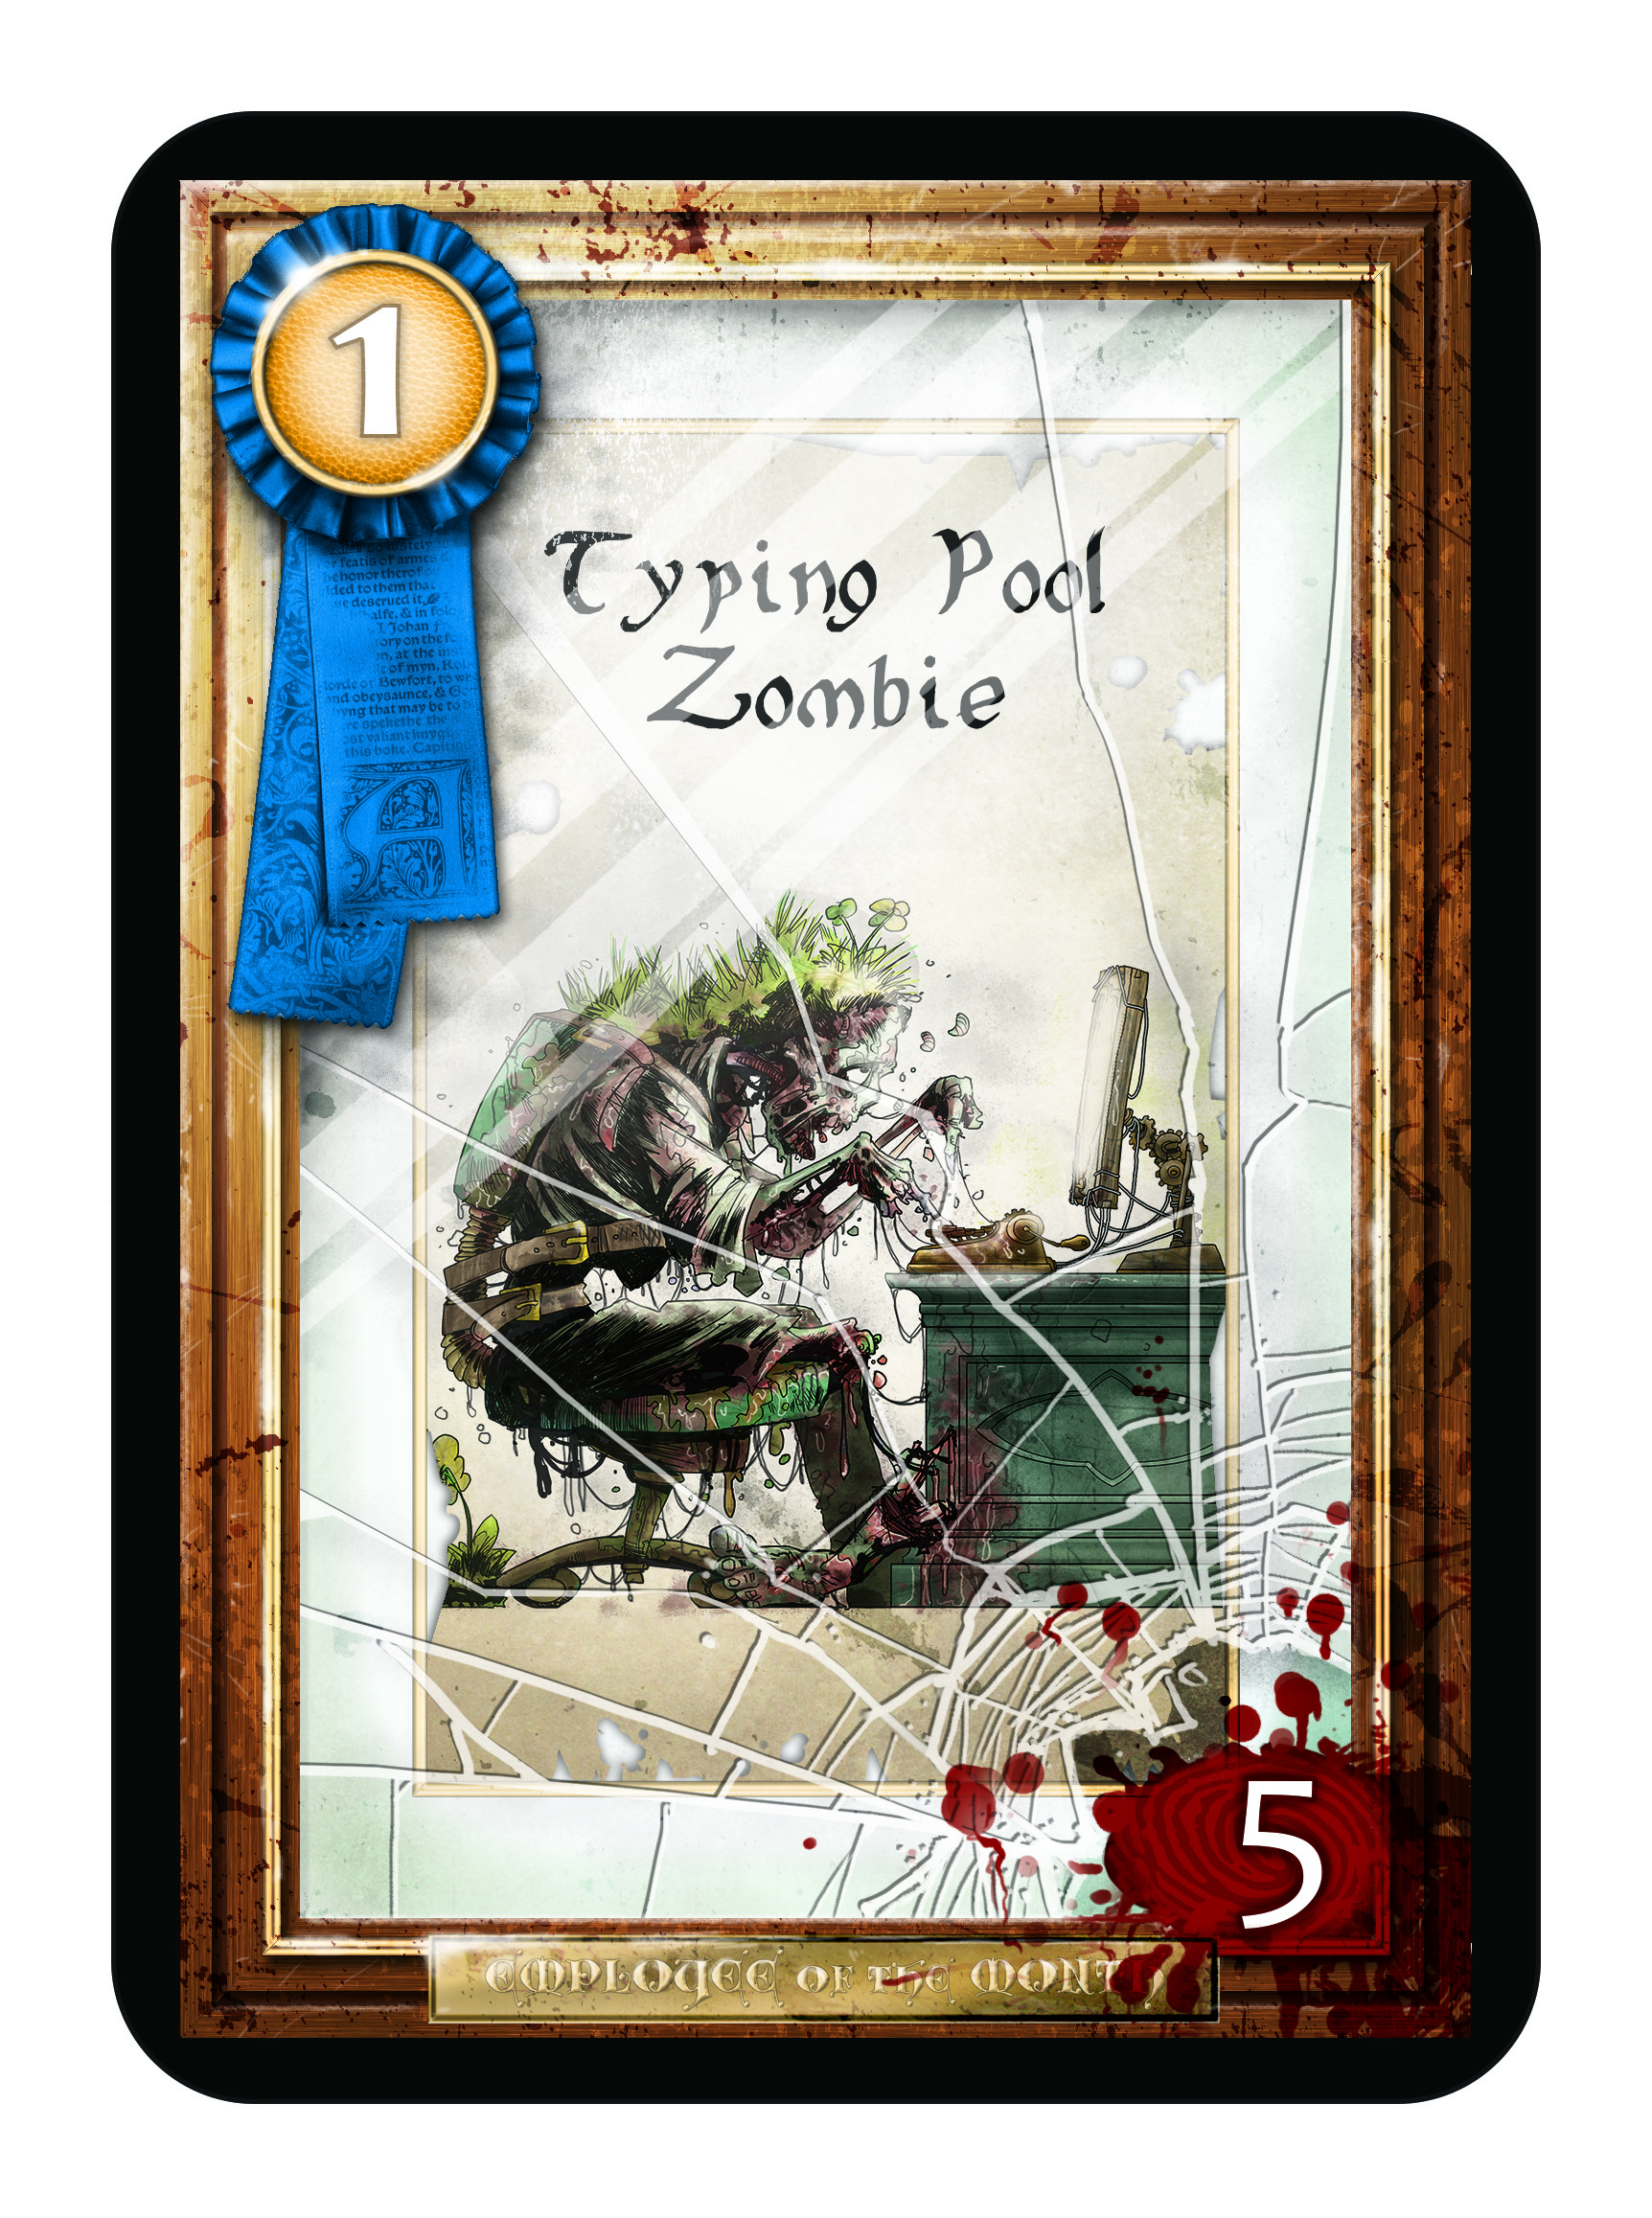 Typing Pool Zombie